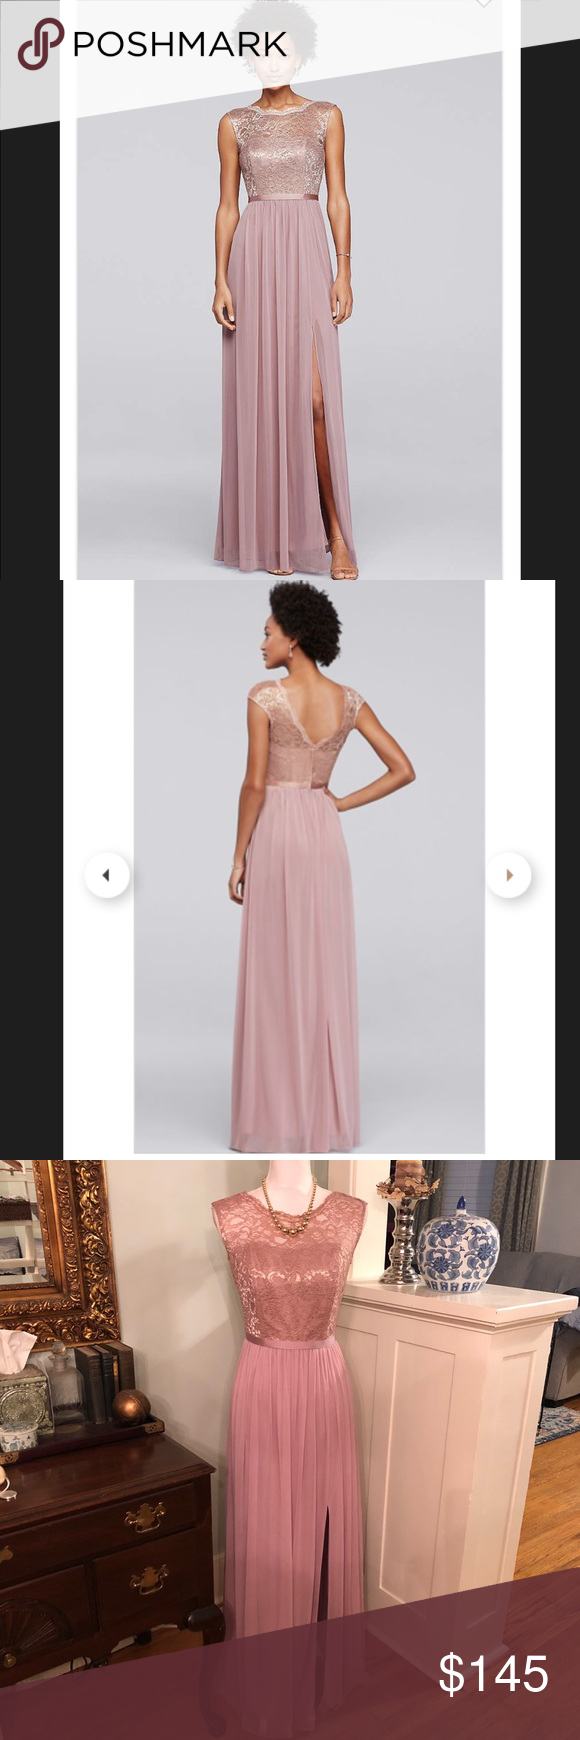 Davidus bridal rose gold pink bridesmaid dress in my posh